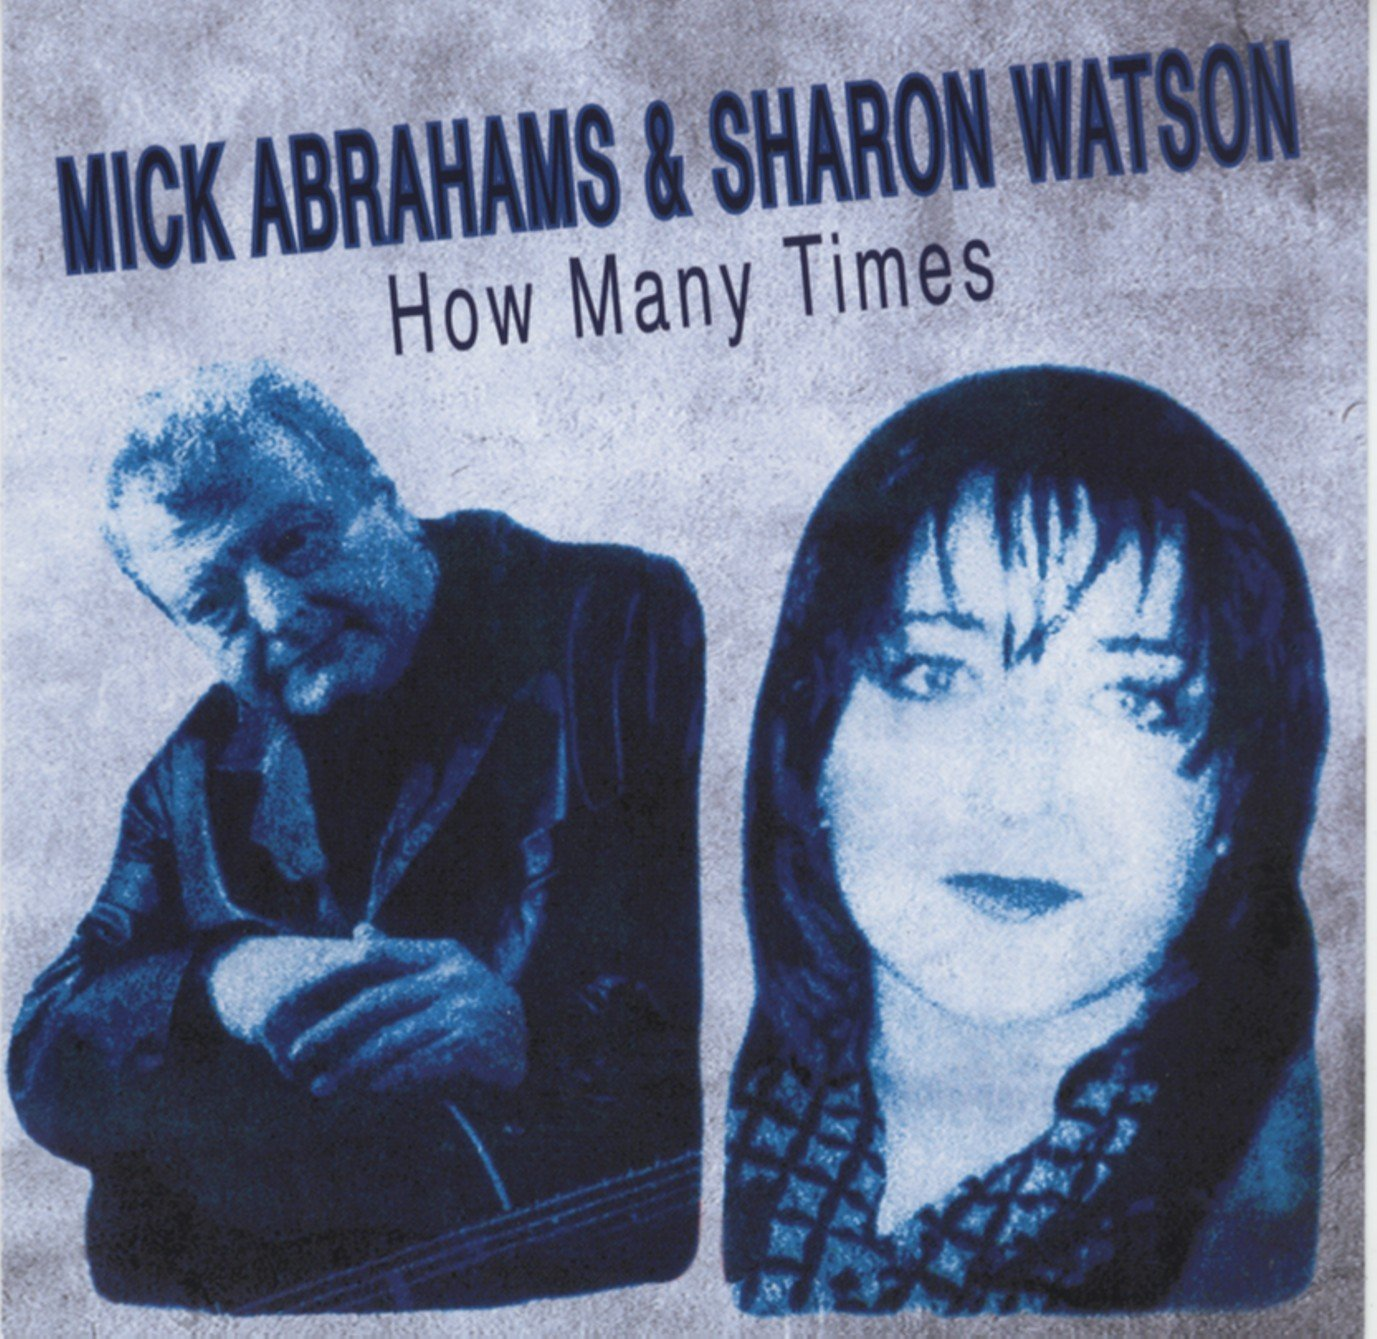 Mick Abrahams / Sharon Watson — How Many Times